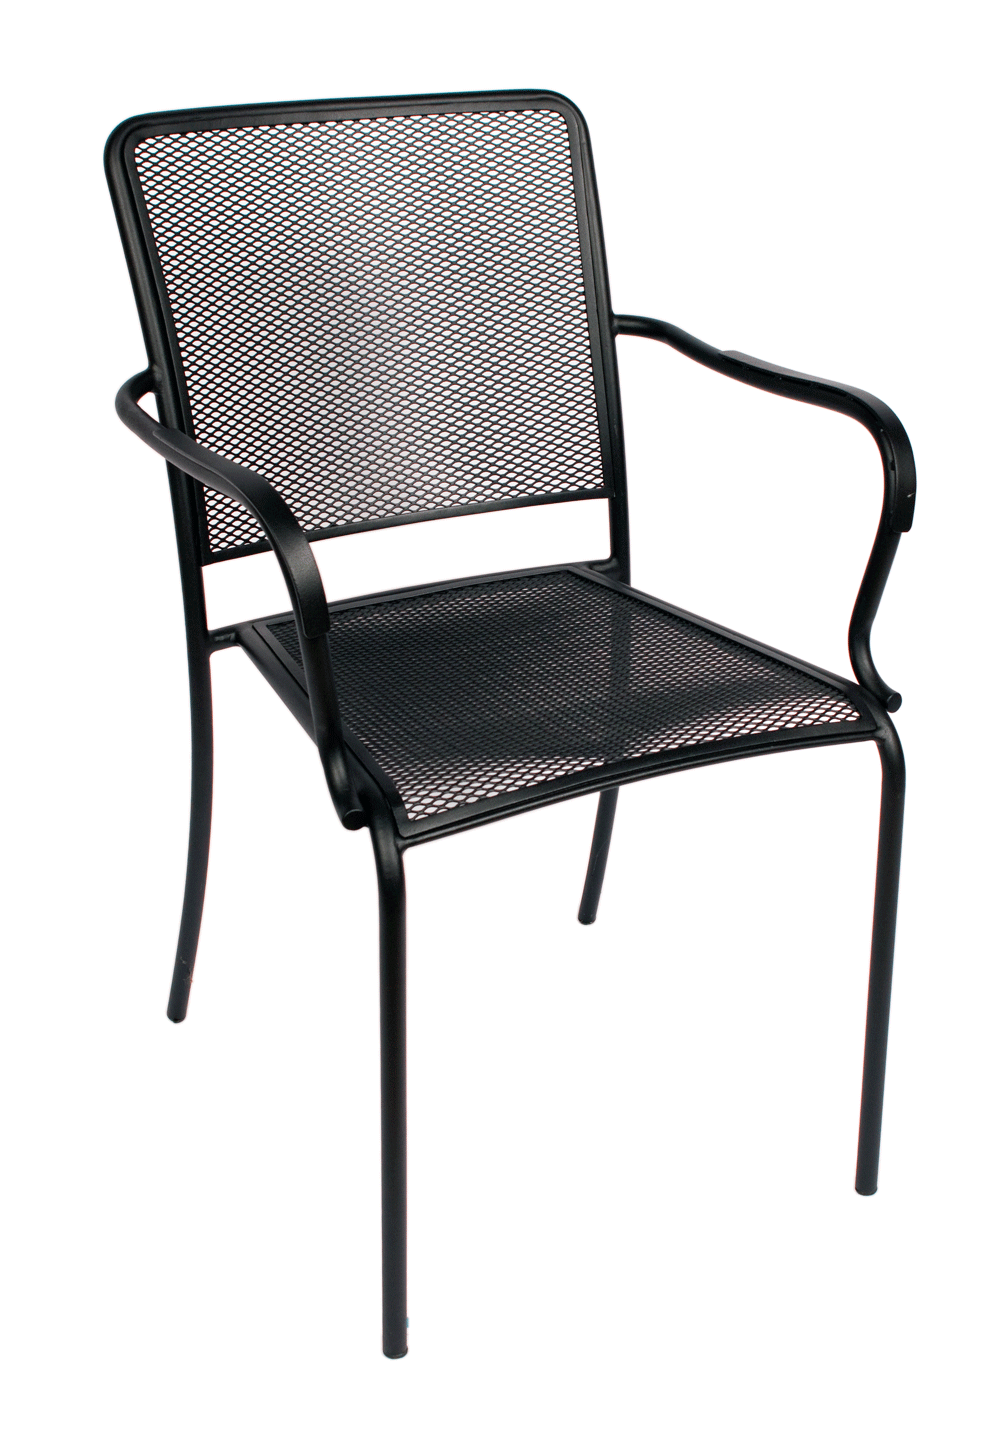 Mesh Patio Chairs Look More At Http Besthomezone 18109